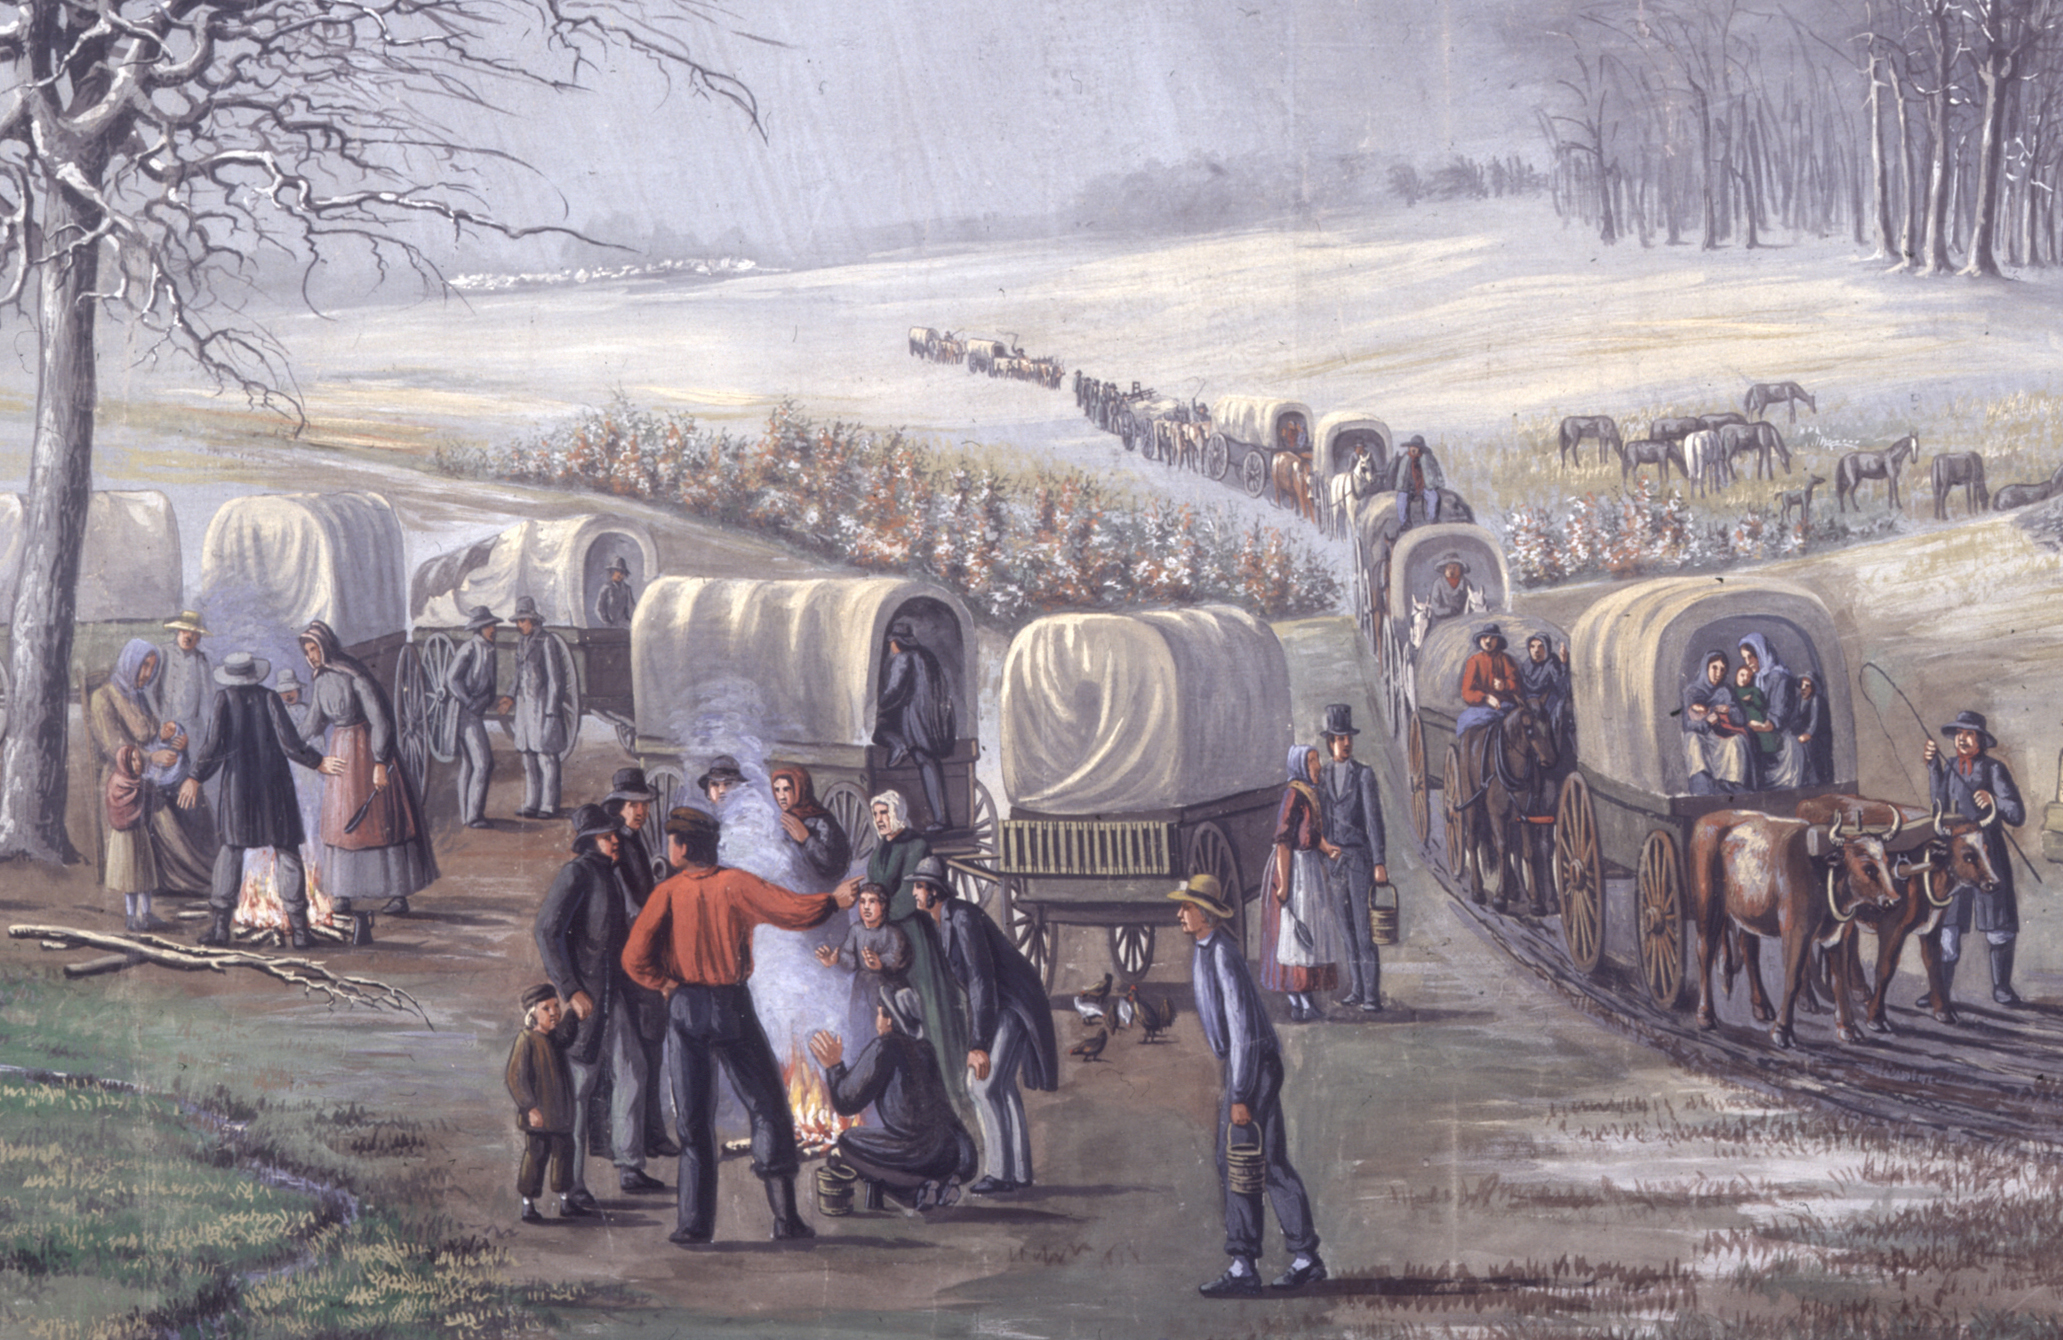 C. C. A. Christensen's Leaving Missouri is on display at the Museum of Art. C.C.A. Christensen's Moving Pictures panorama is now on display at the Museum of Art. The exhibit consists of 22 paintings depicting early Church history events. (C.C.A. Christensen)